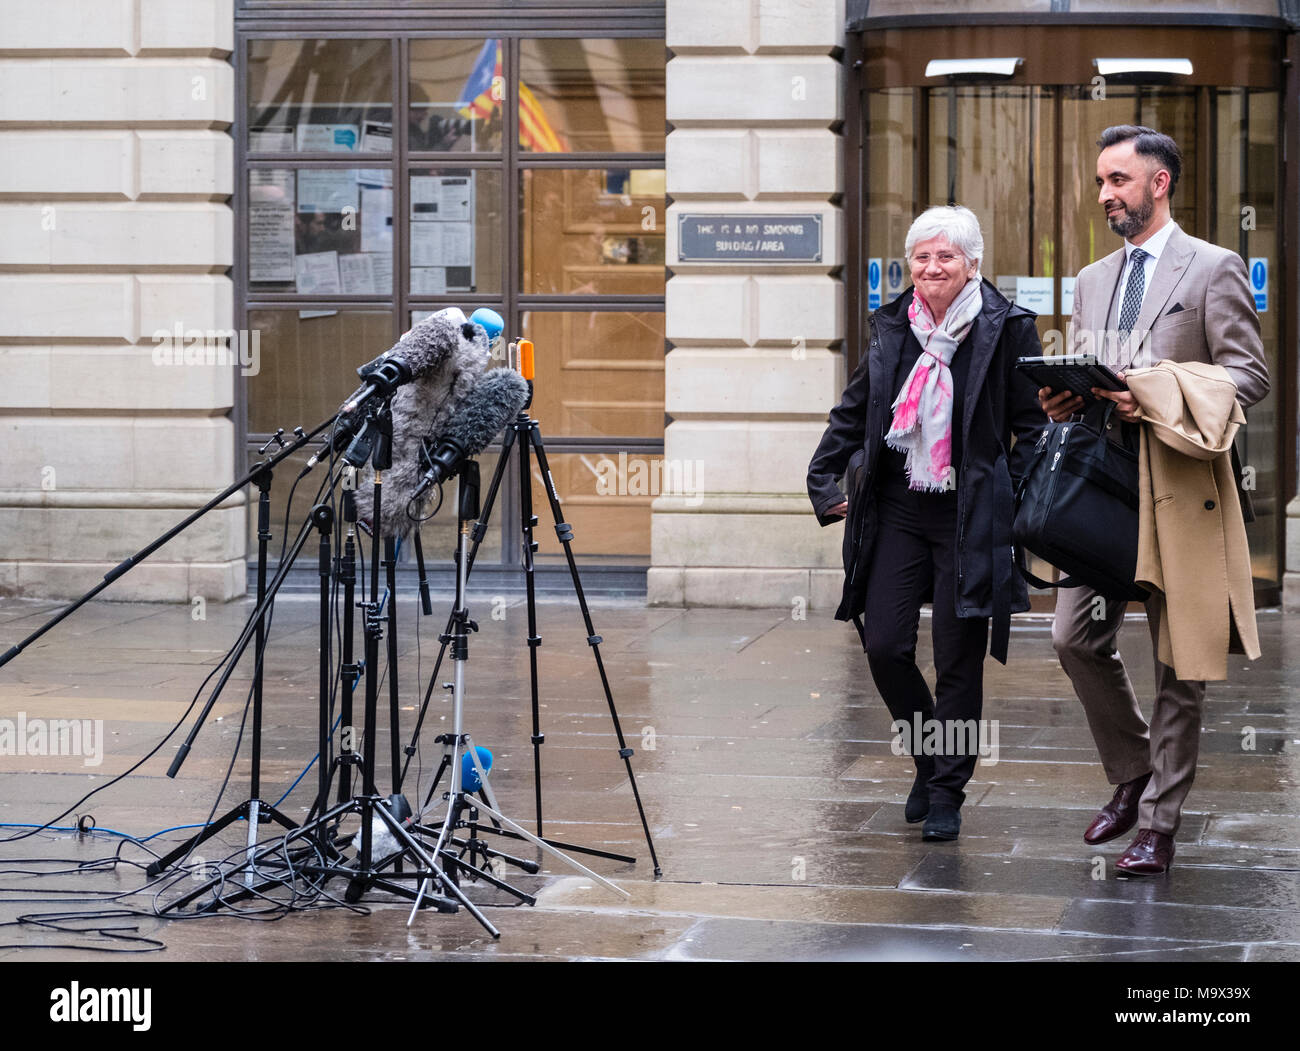 Edinburgh, Scotland,UK. 28 March 2018.  Clara Ponsati  leaving  Edinburgh Sheriff Court after her hearing. Ponsati faces extradition to Spain to face charges of rebellion over her support of Catalan Independence. Credit: Iain Masterton/Alamy Live News - Stock Image